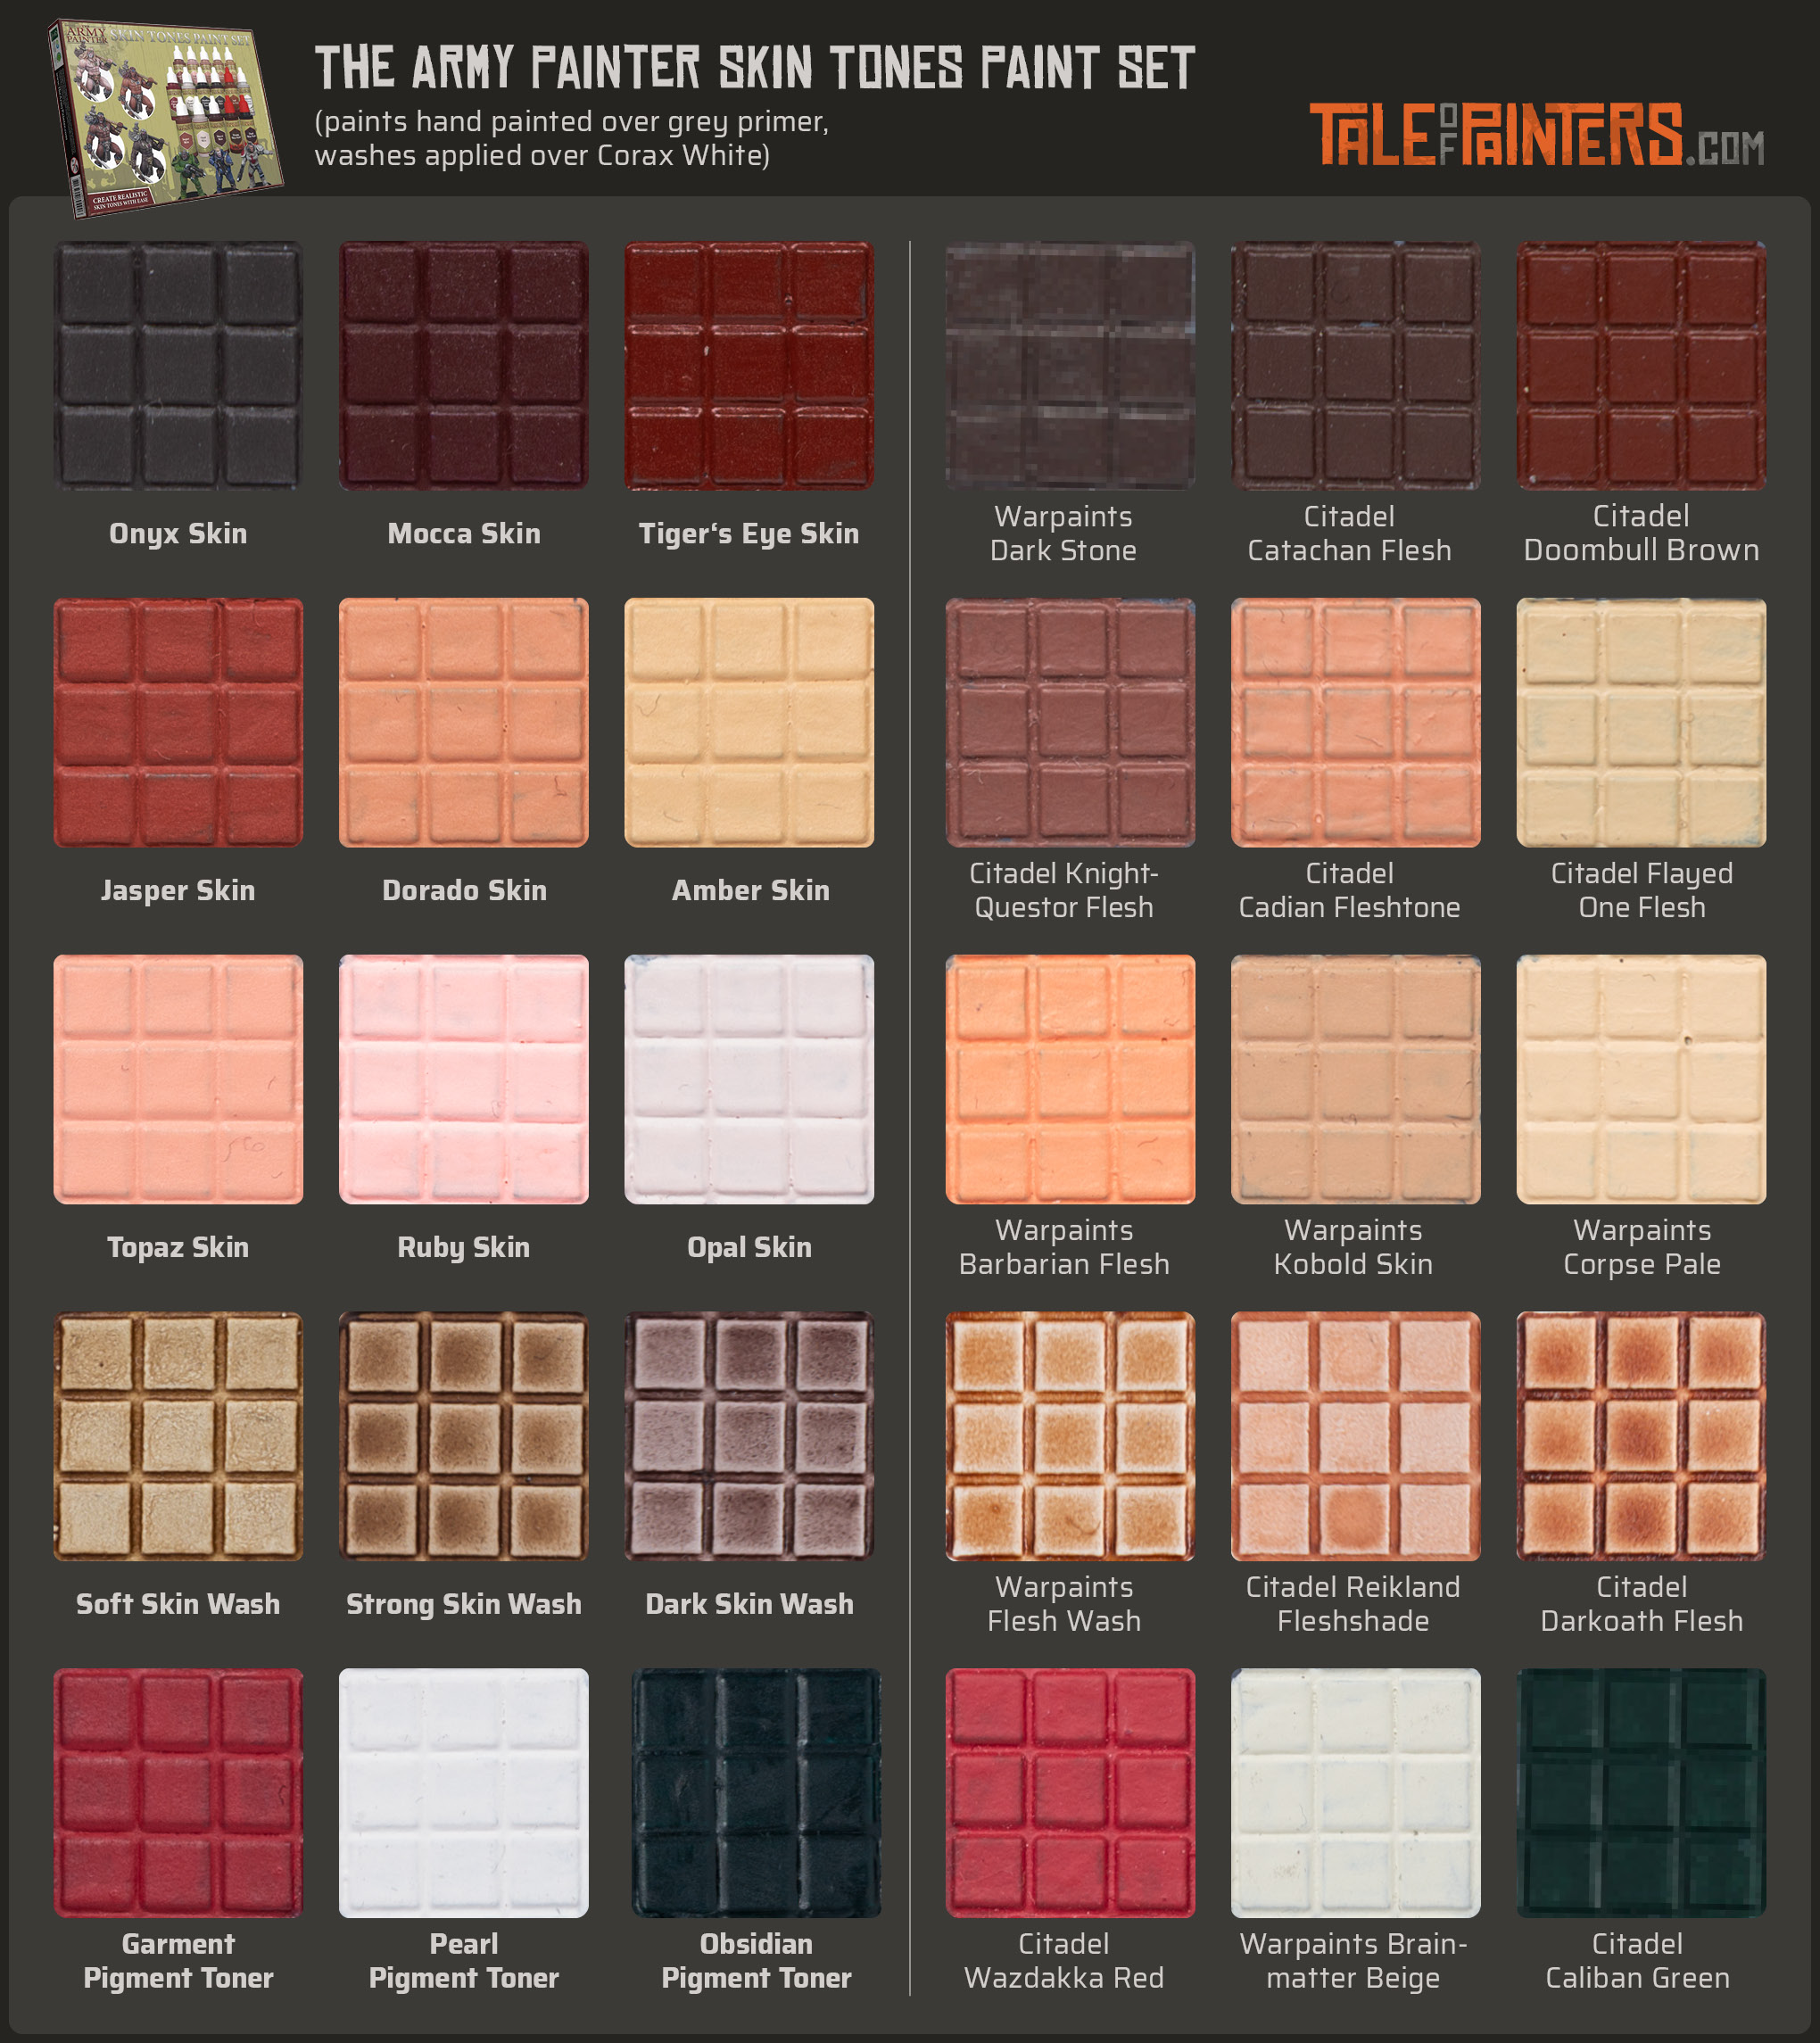 Review: The Army Painter Skin Tones Paint Set chart